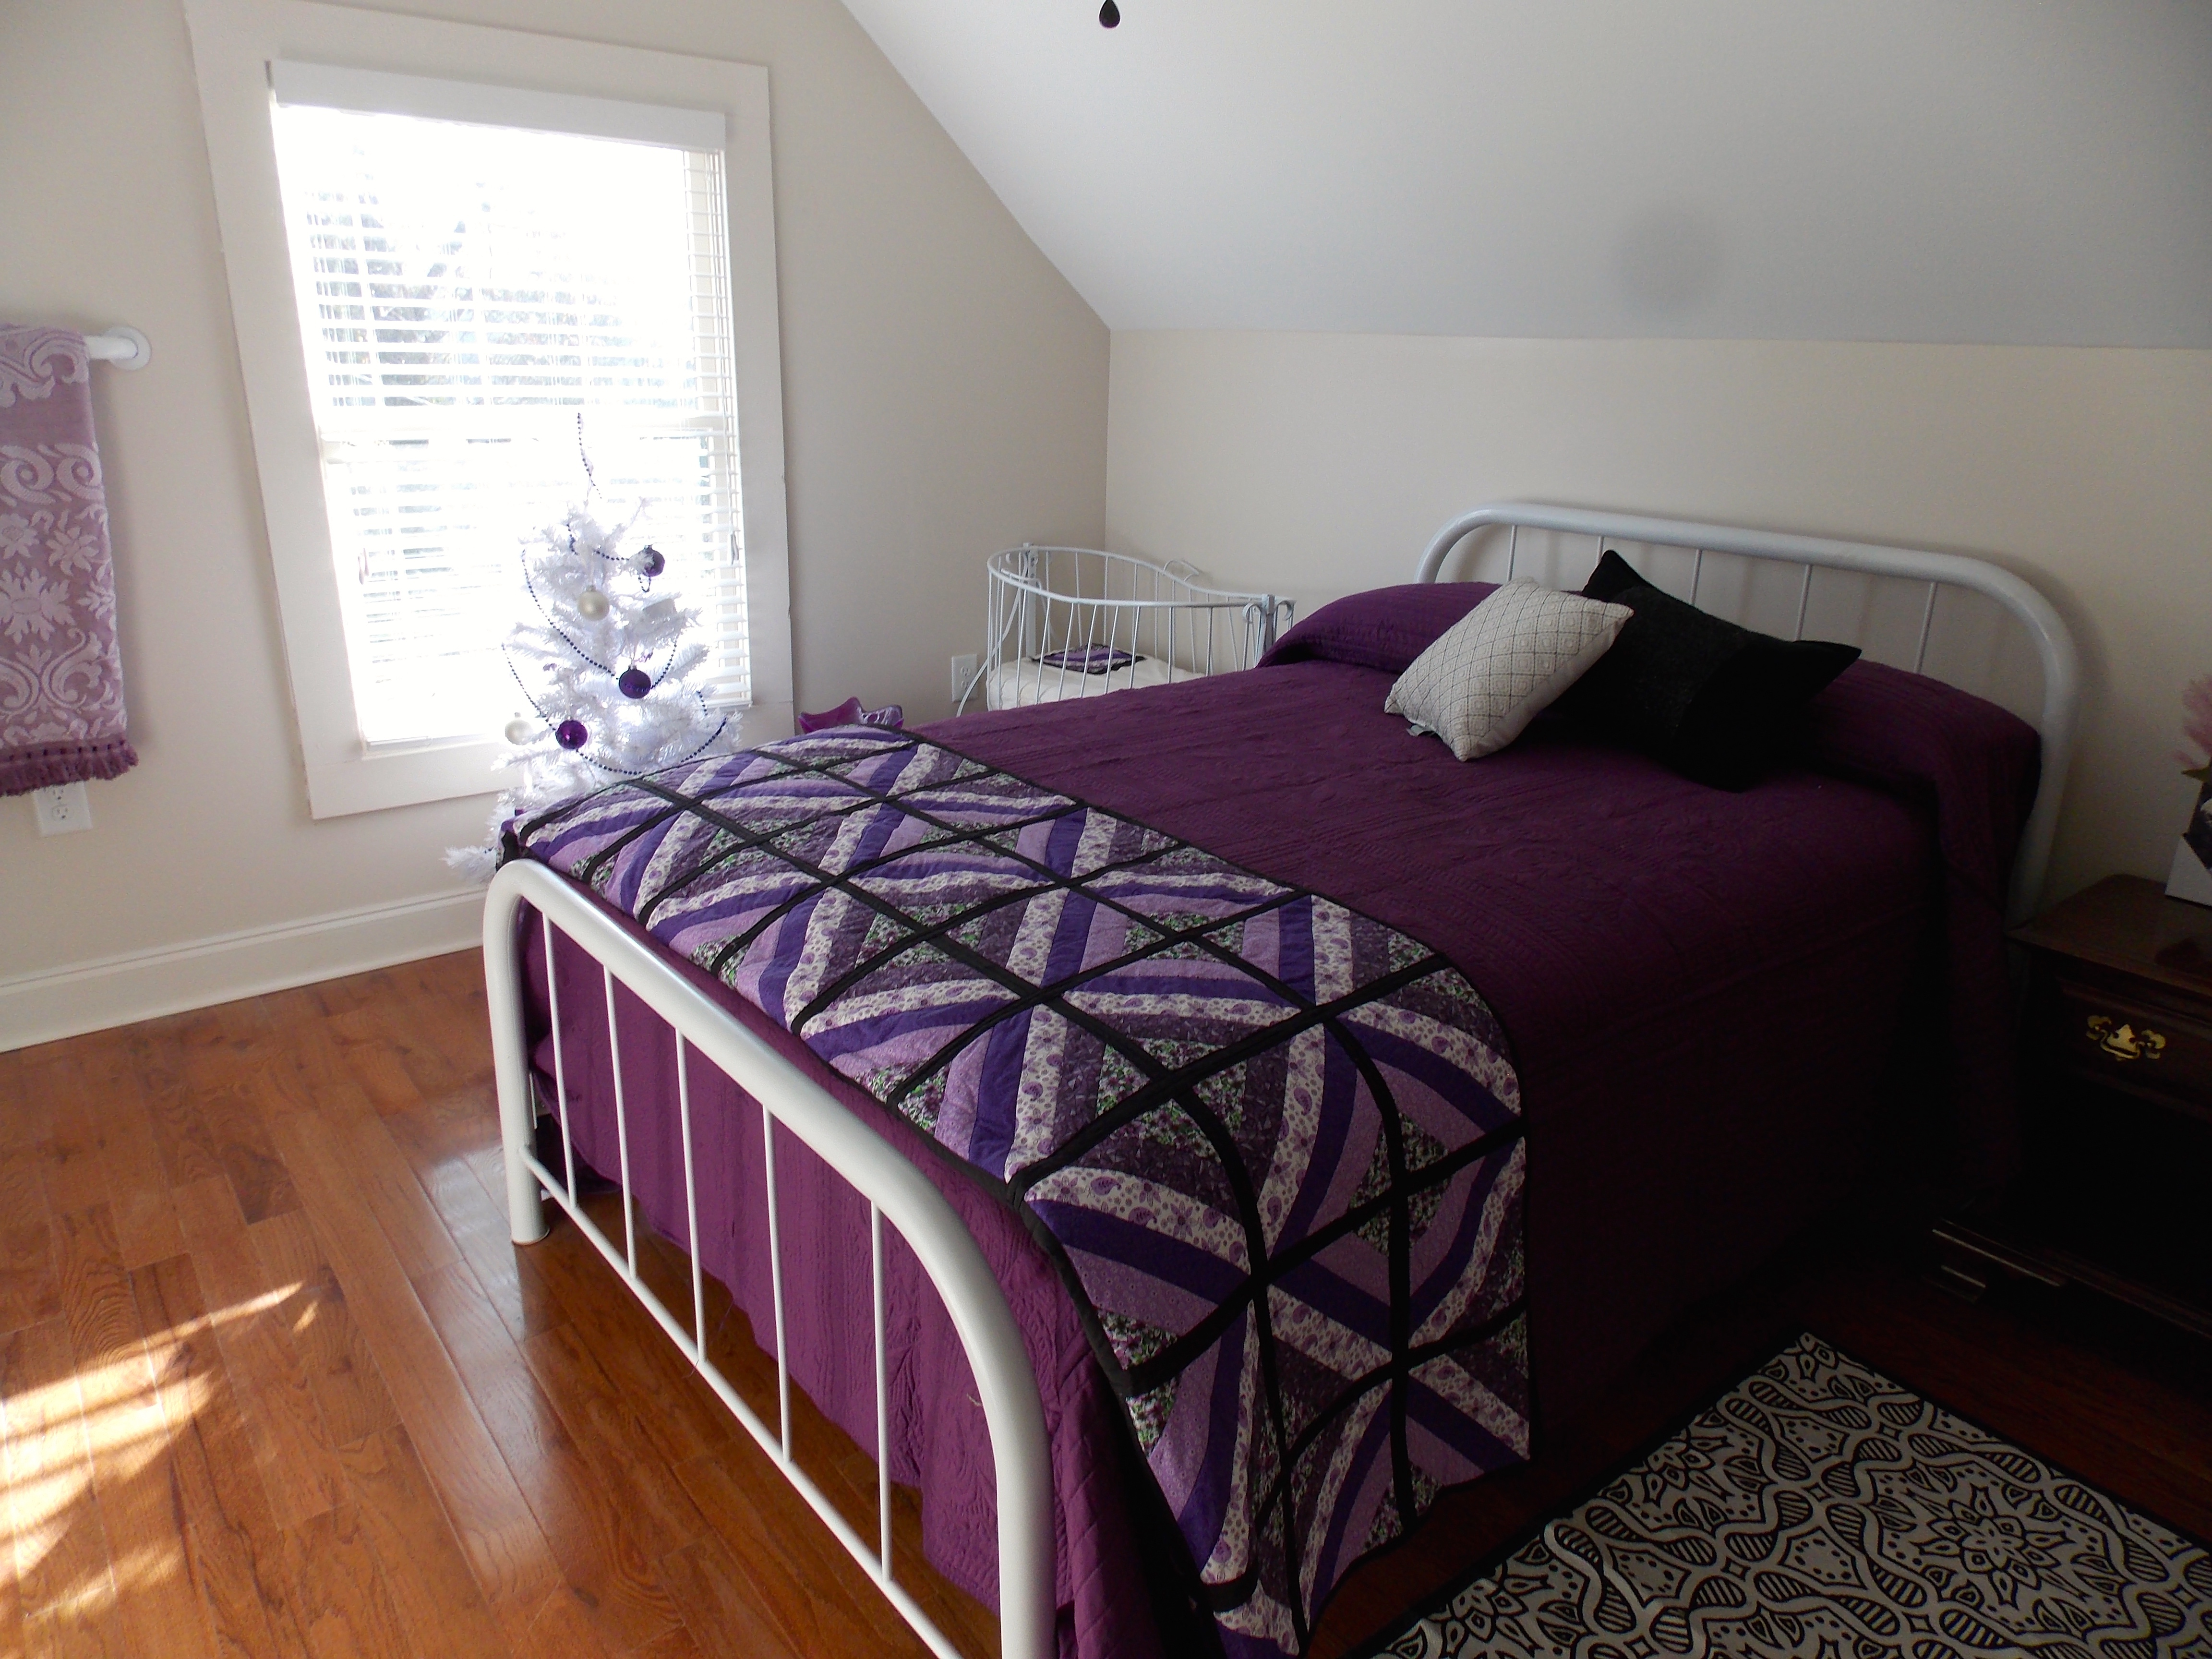 Twin bed with white frame